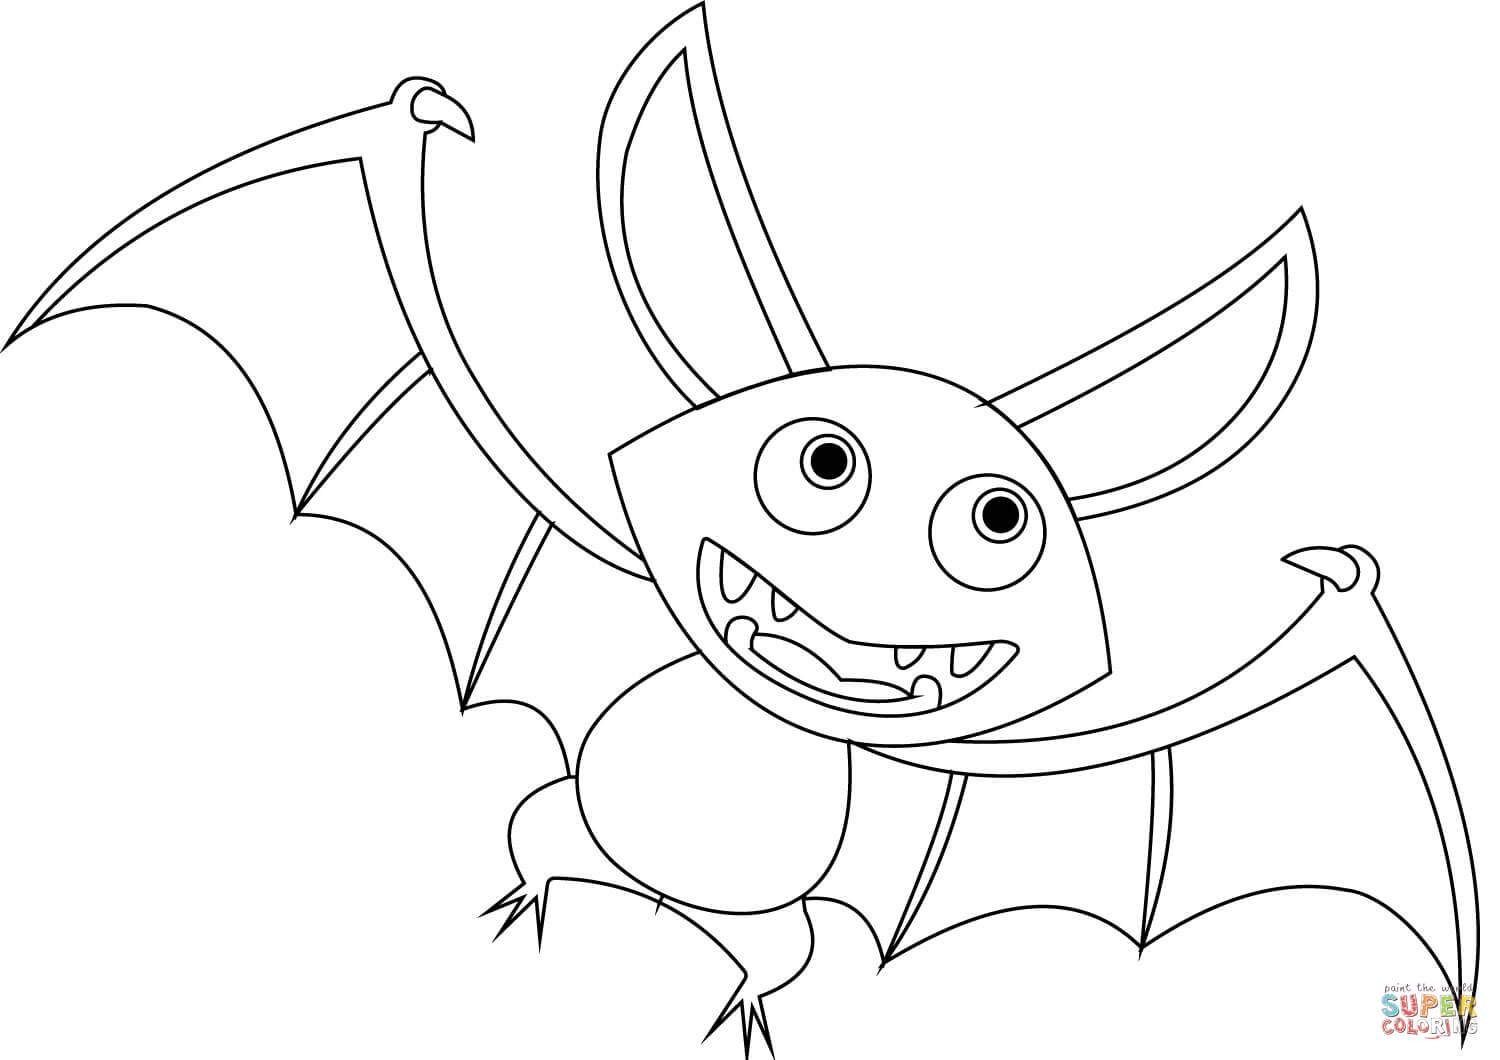 List of Cartoon Coloring Bats Pict - Best Pictures